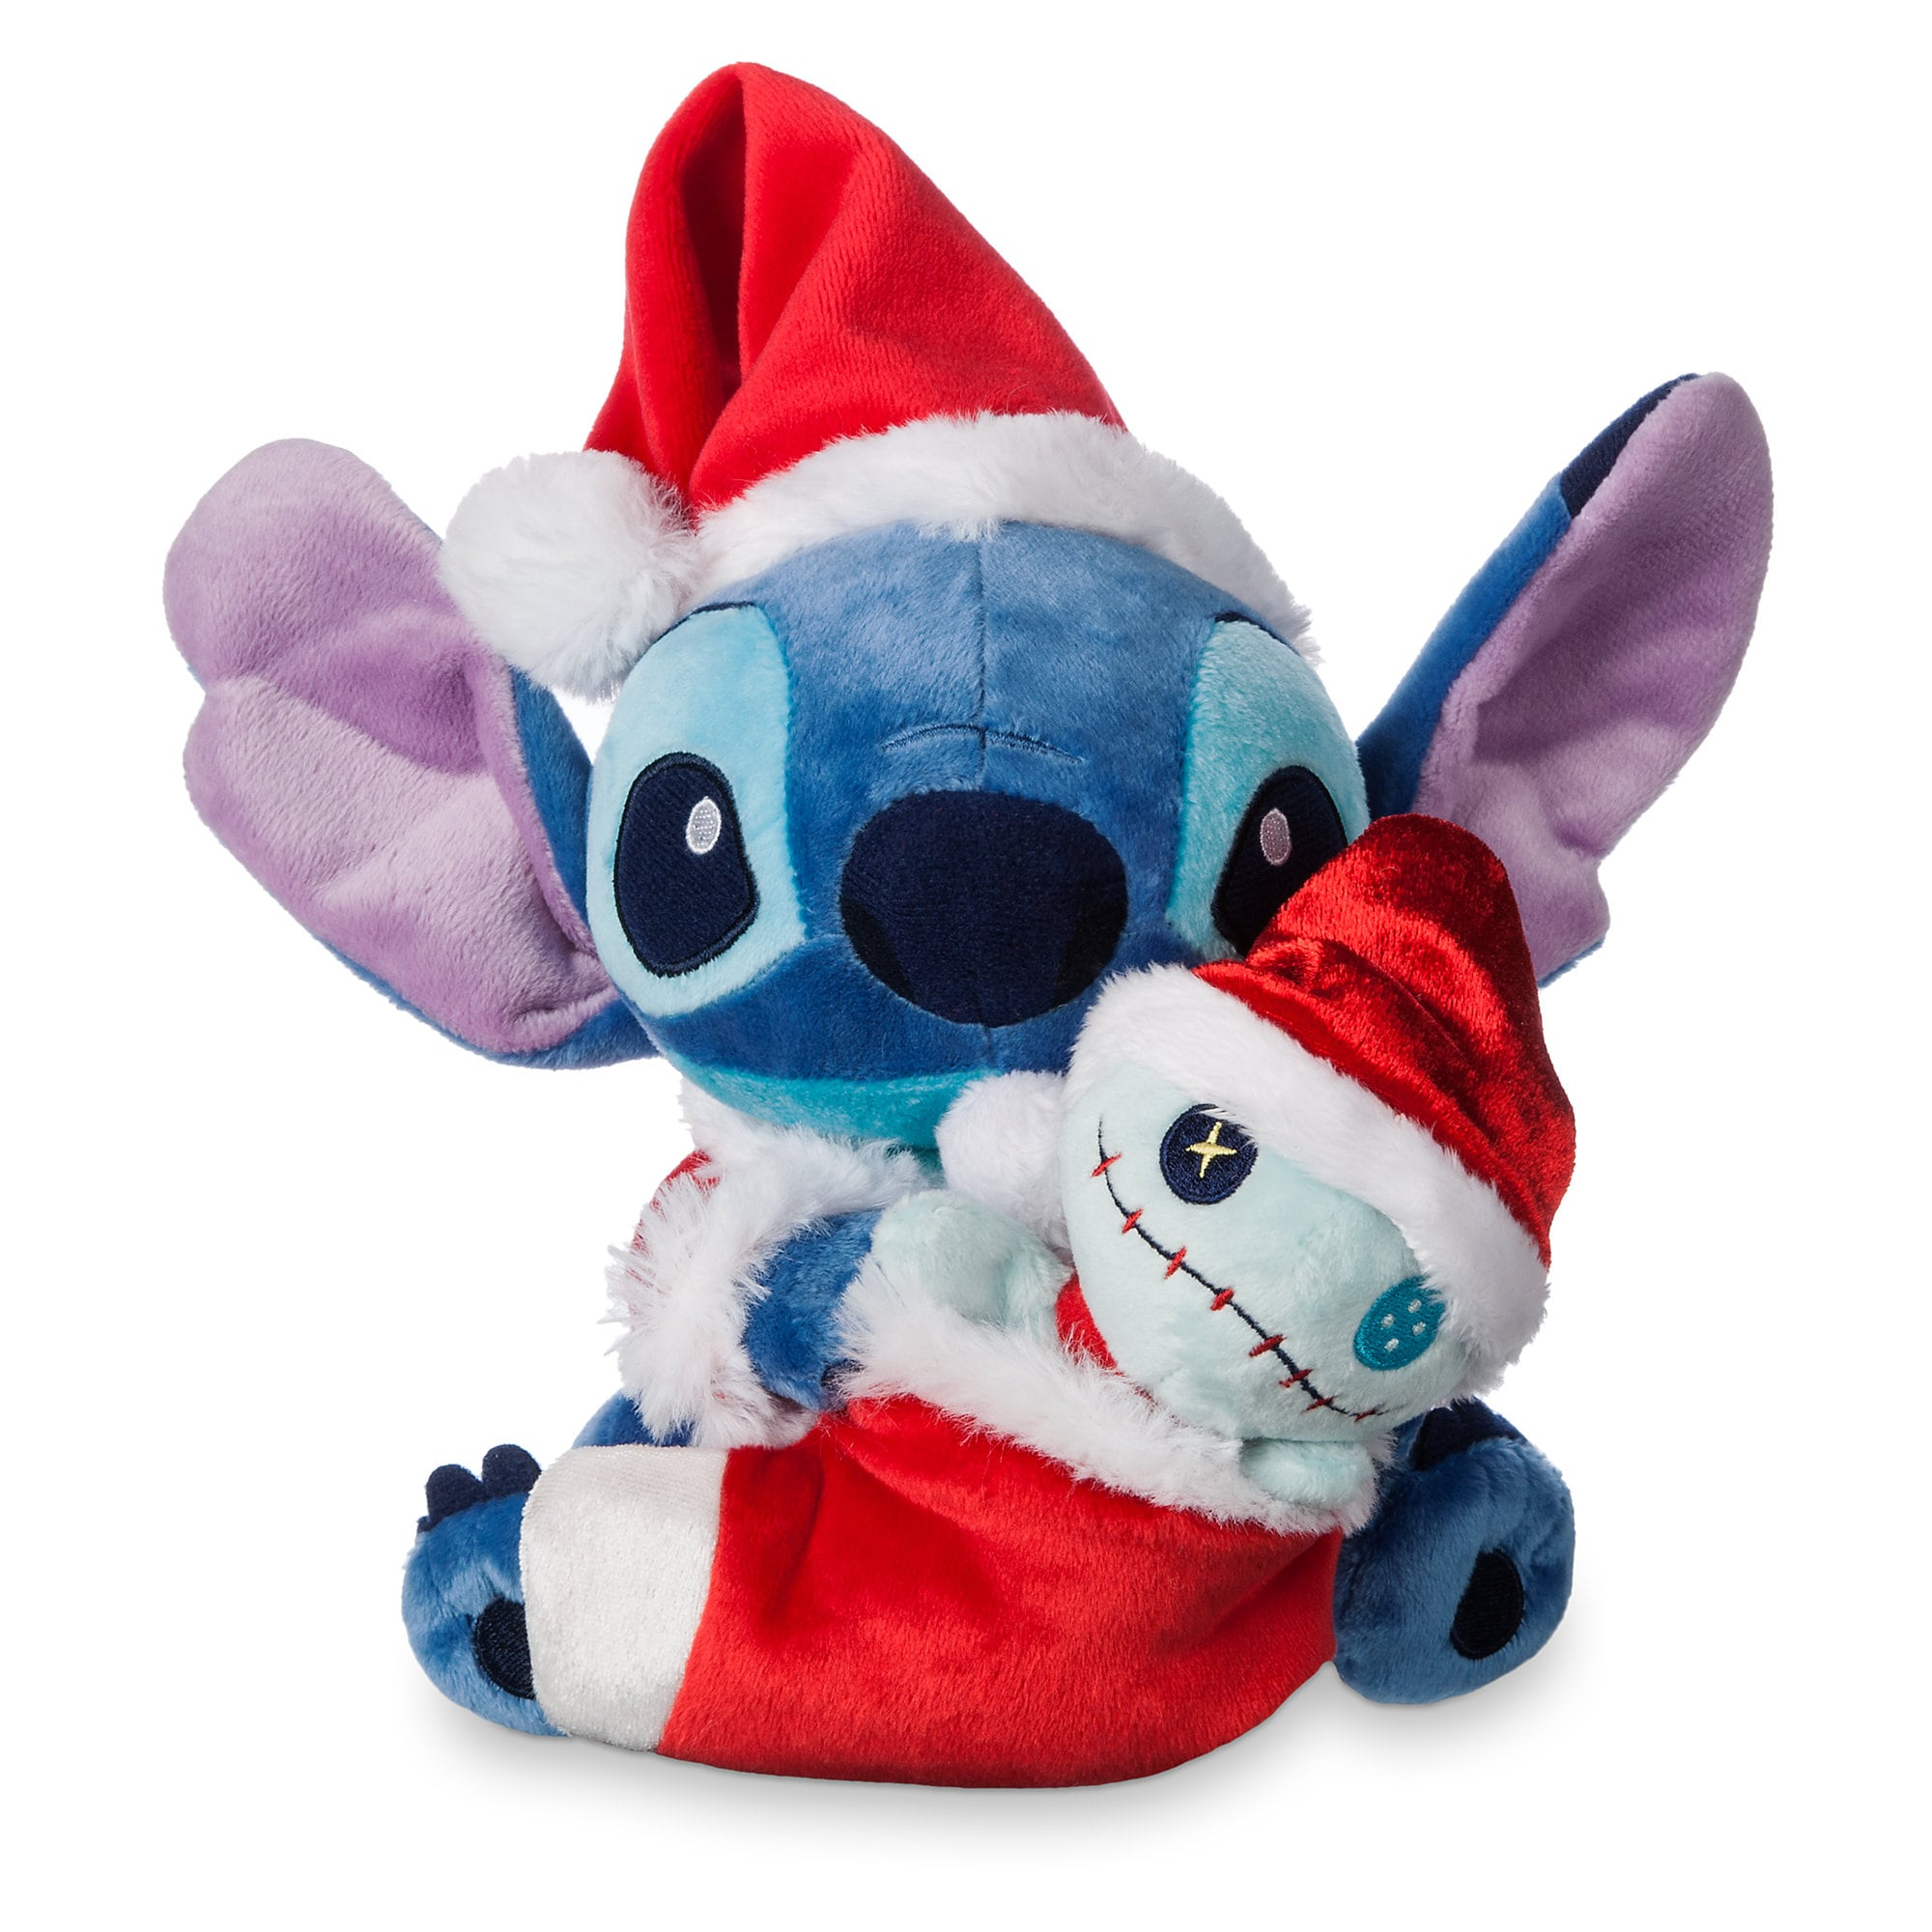 Stitch and Scrump Holiday Plush Set - Small - 6''